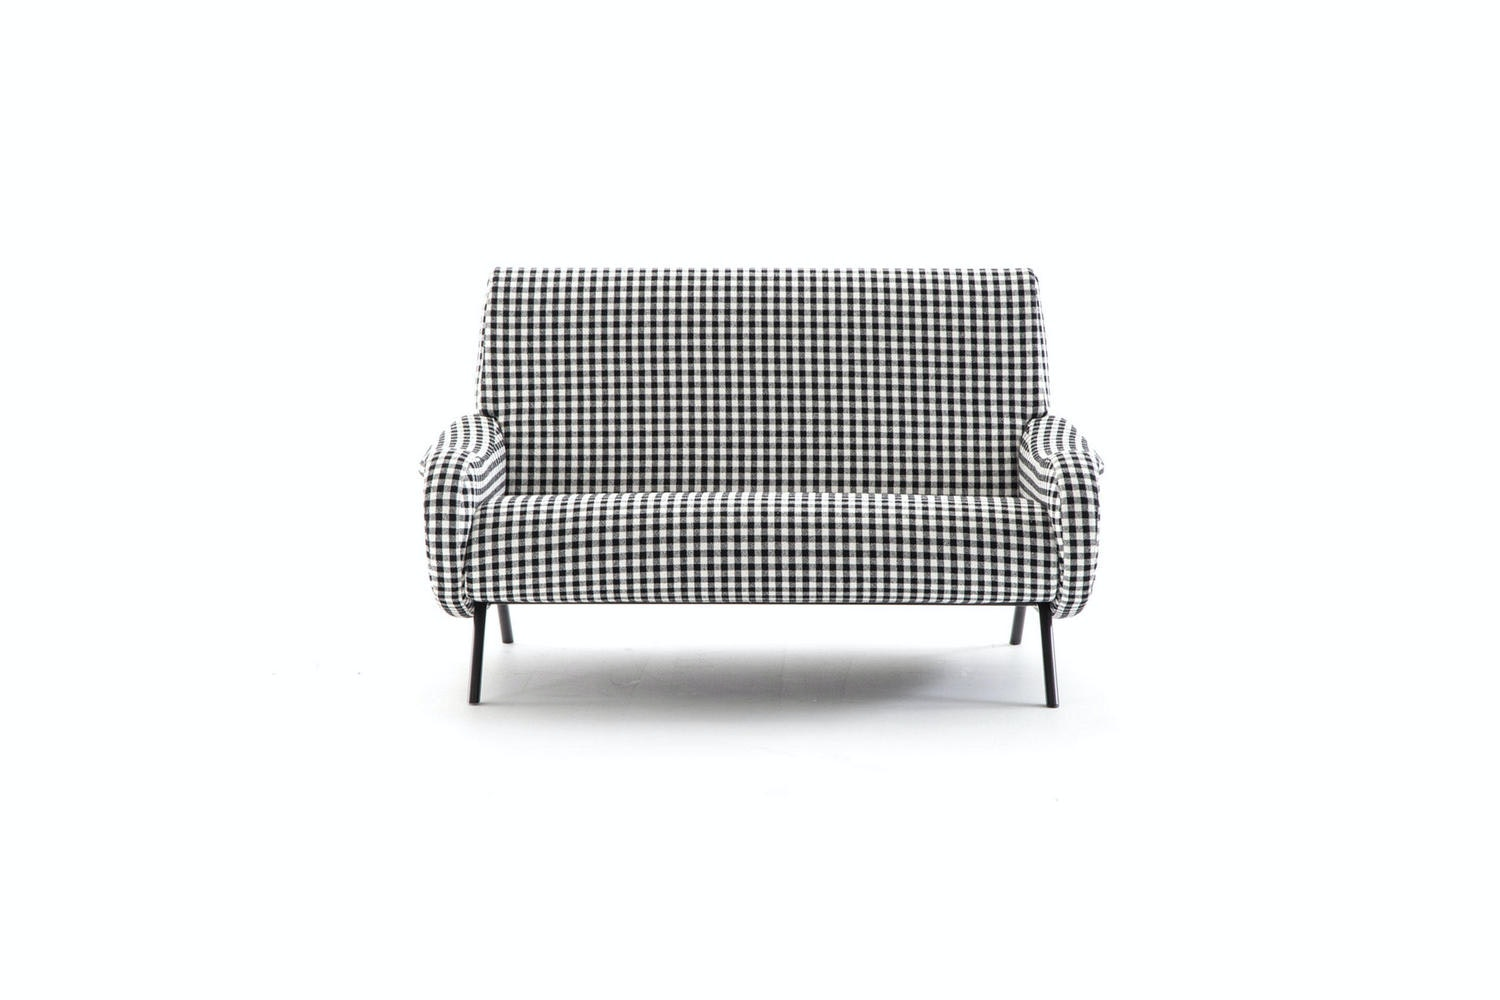 720 Lady Sofa by Marco Zanuso for Cassina